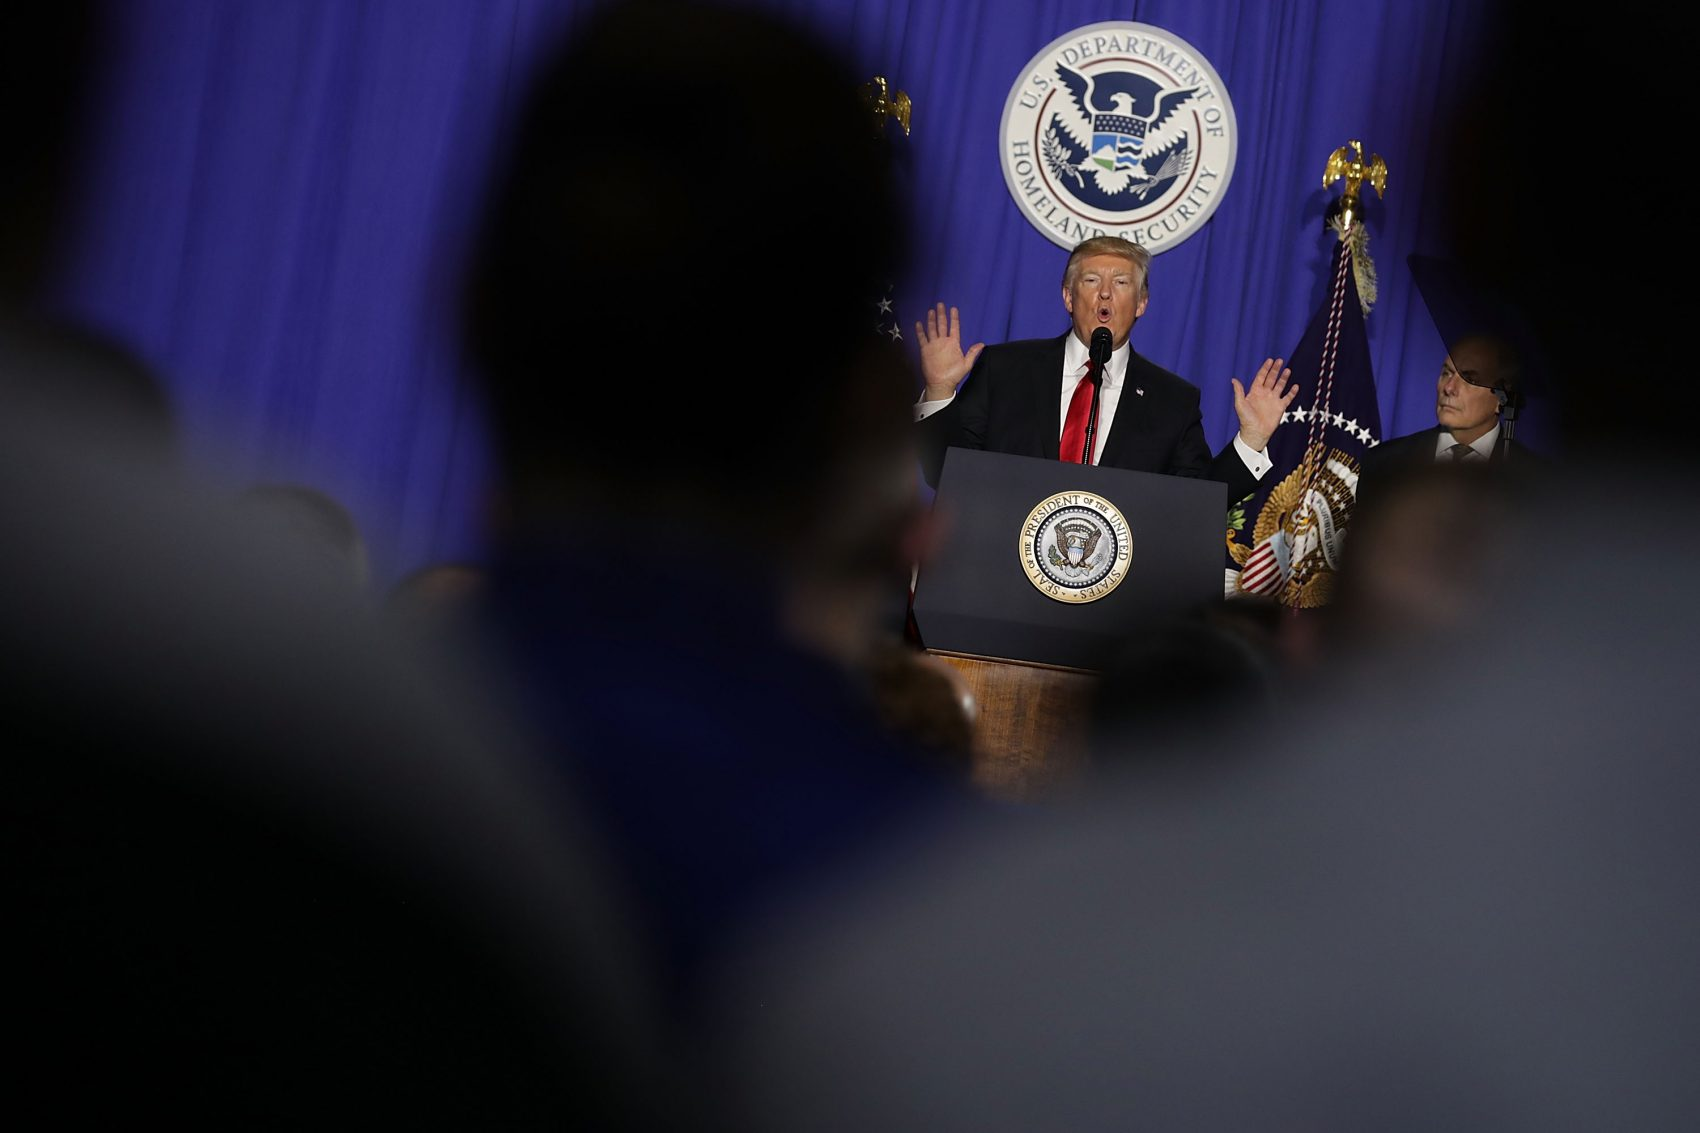 President Donald Trump delivers remarks during a visit to the Department of Homeland Security on Jan. 25, 2017 in Washington. (Chip Somodevilla/Getty Images)